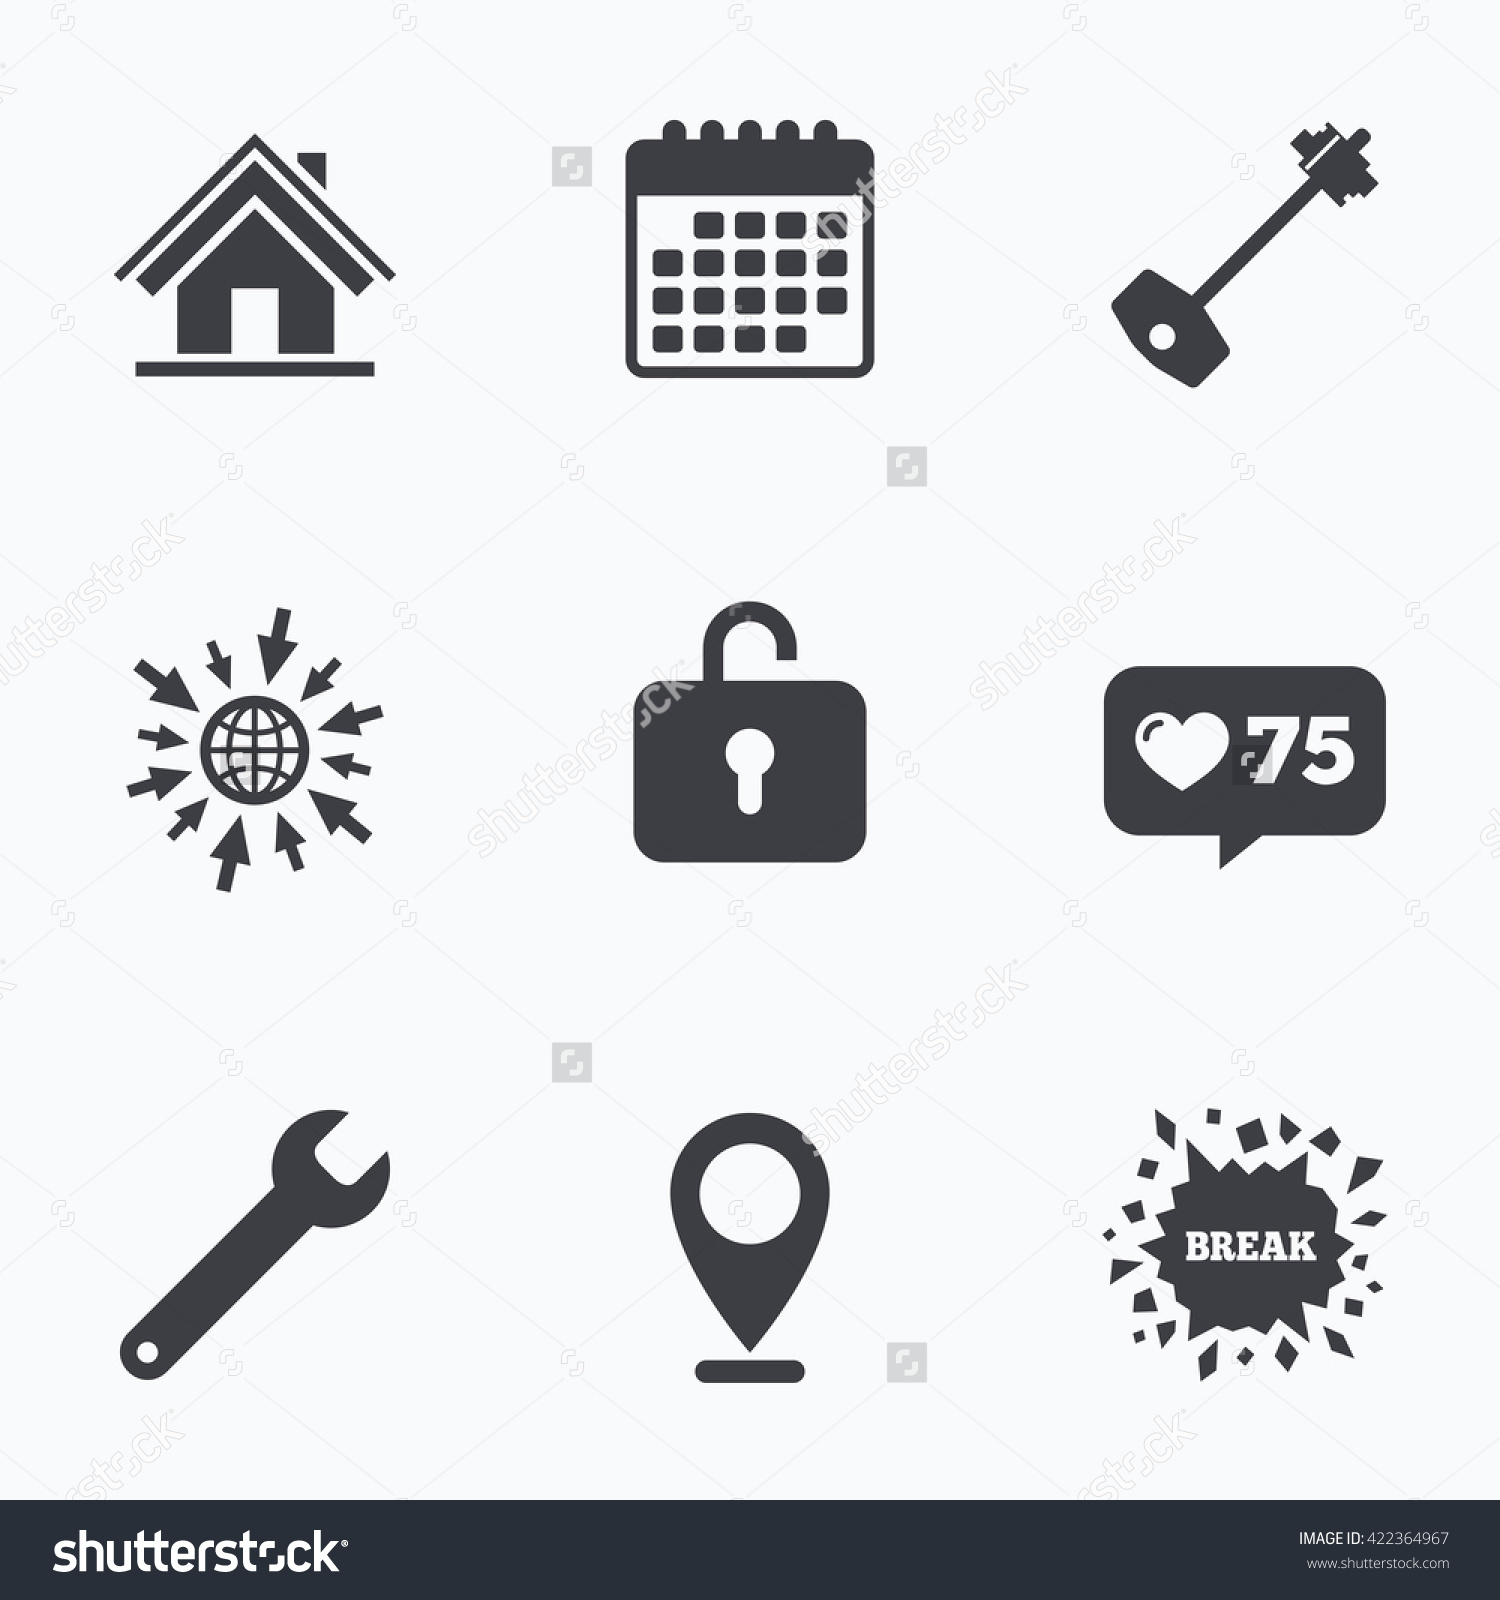 Calendar, Like Counter And Go To Web Icons. Home Key Icon. Wrench.